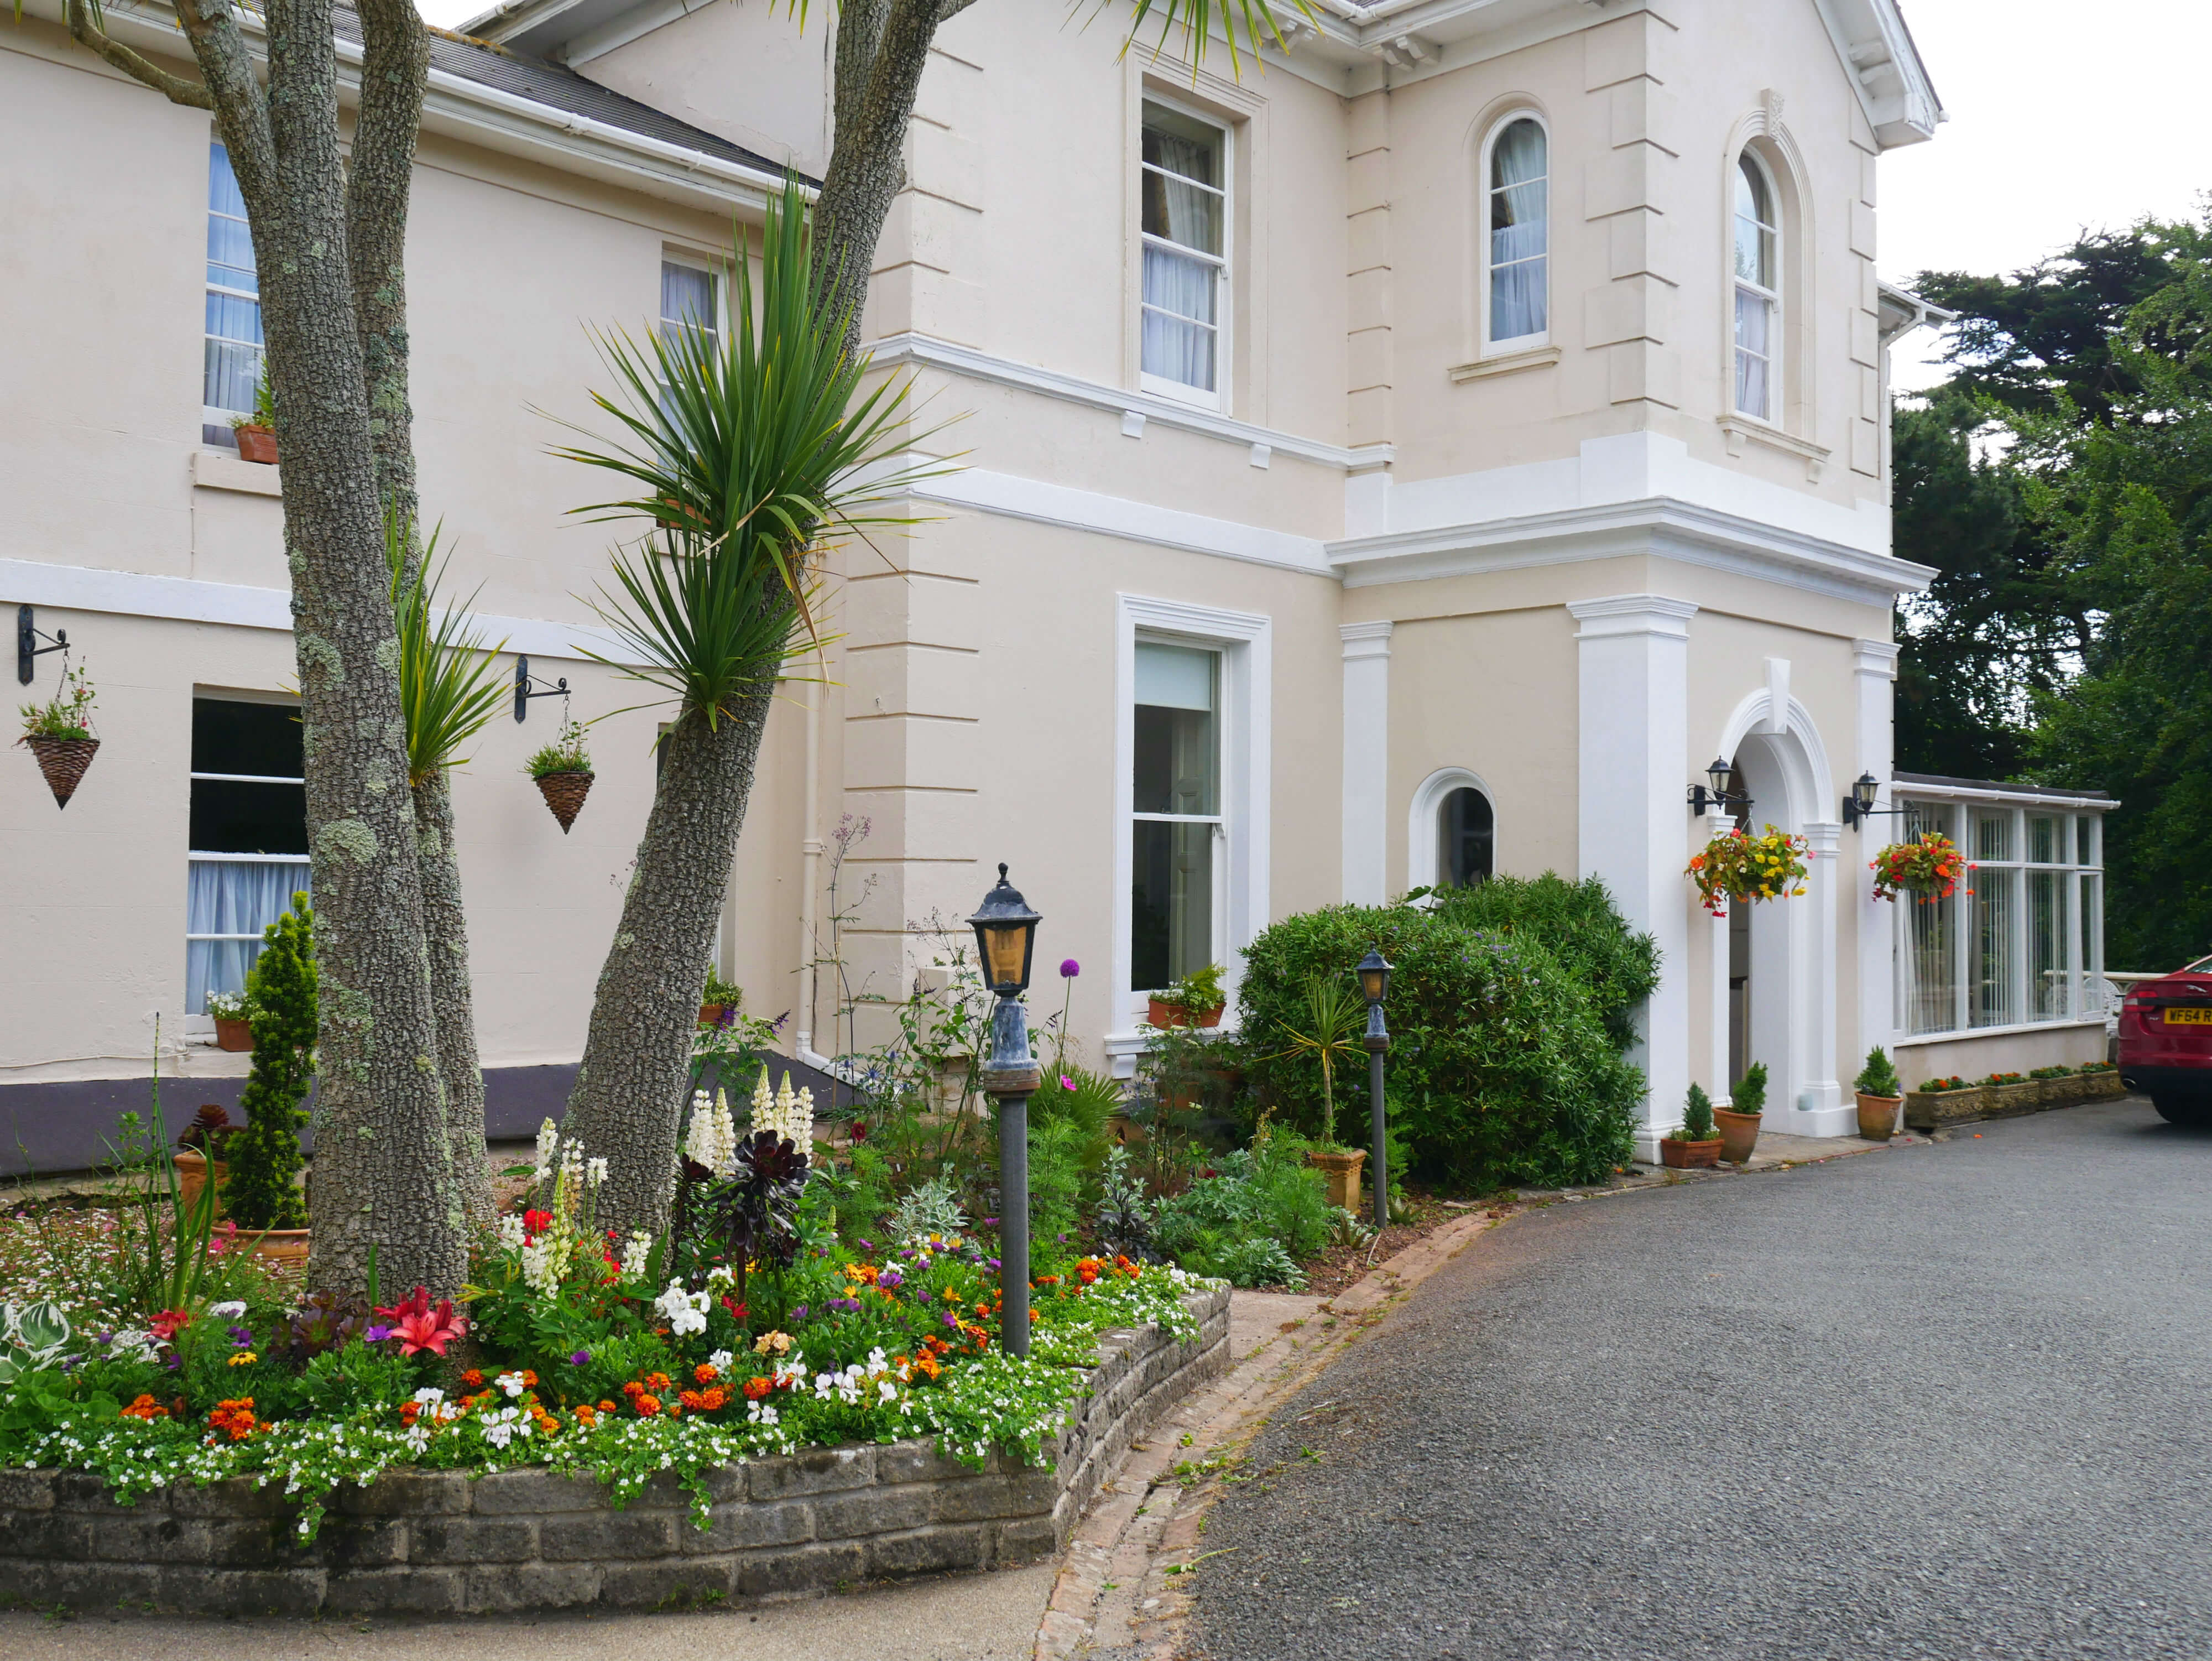 The Muntham Holiday Apartments and Townhouse, Torquay